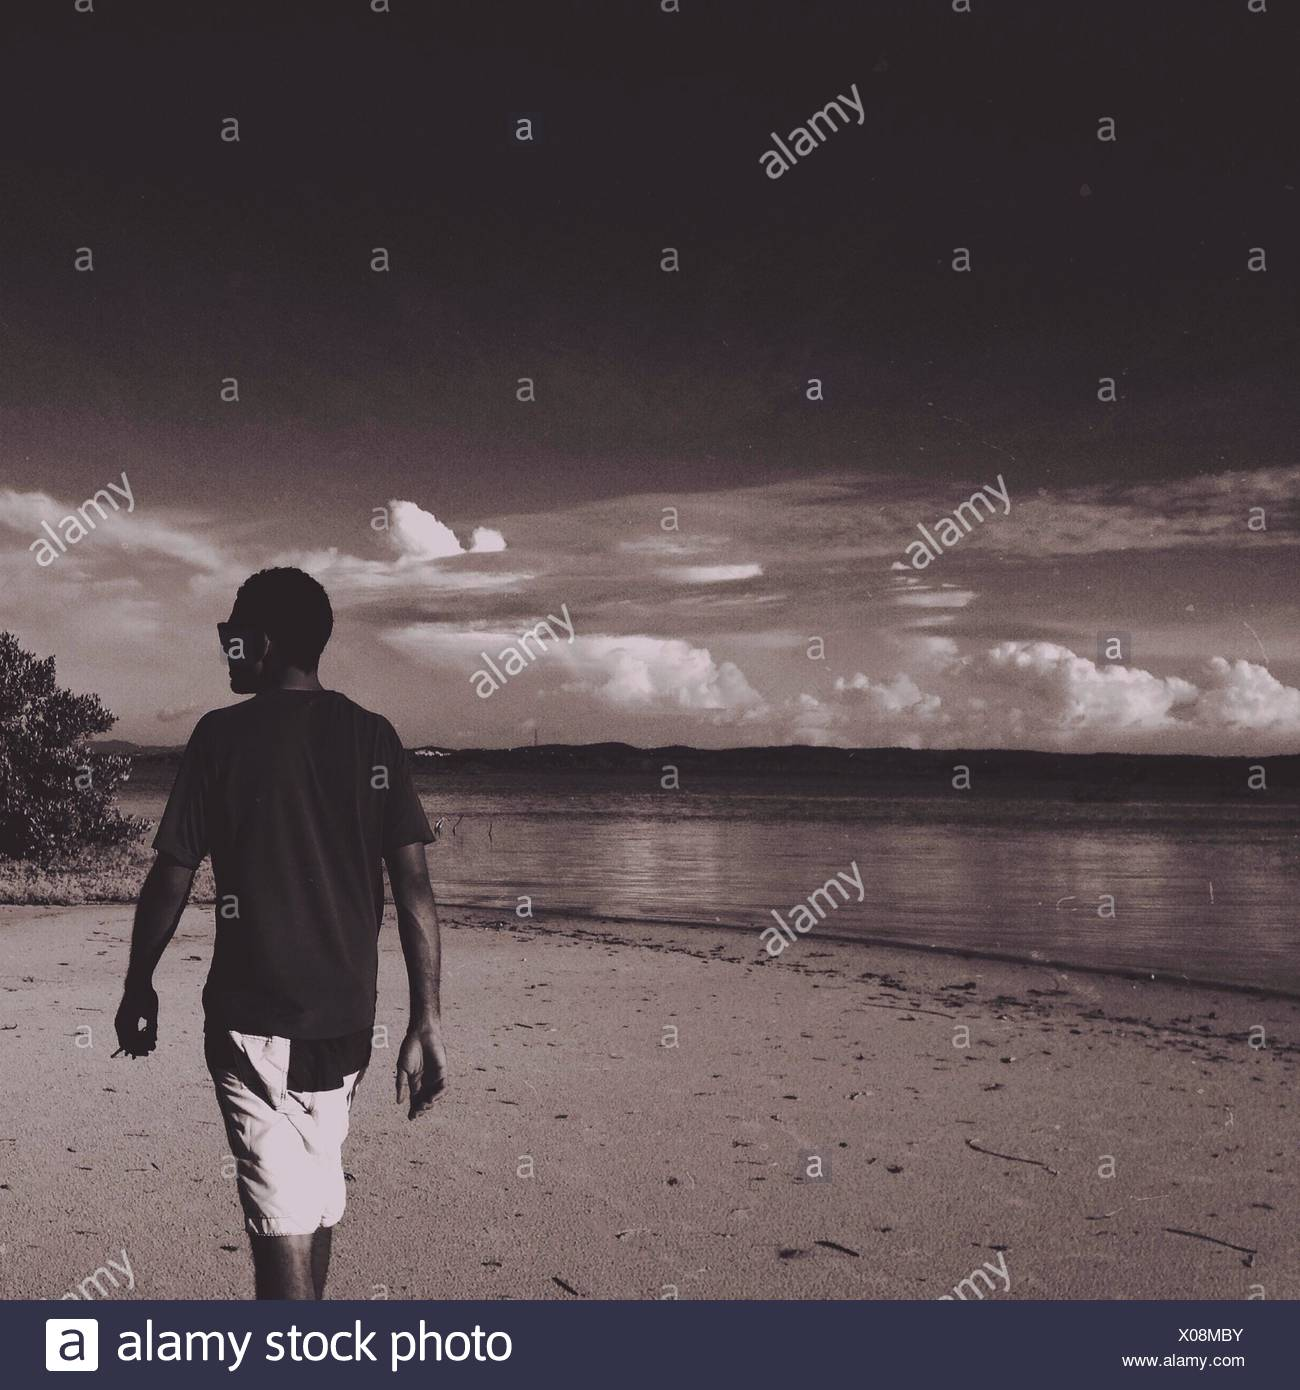 Rear View Of Man Walking On Beach Against Sky - Stock Image